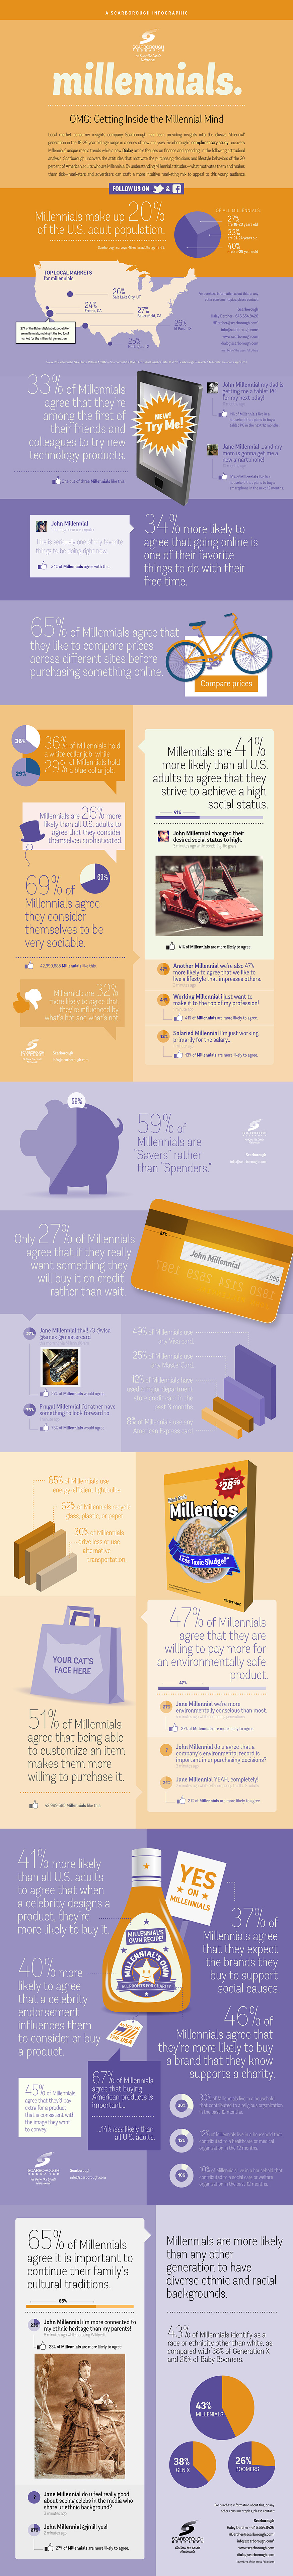 Infographic - The Millennial Mind